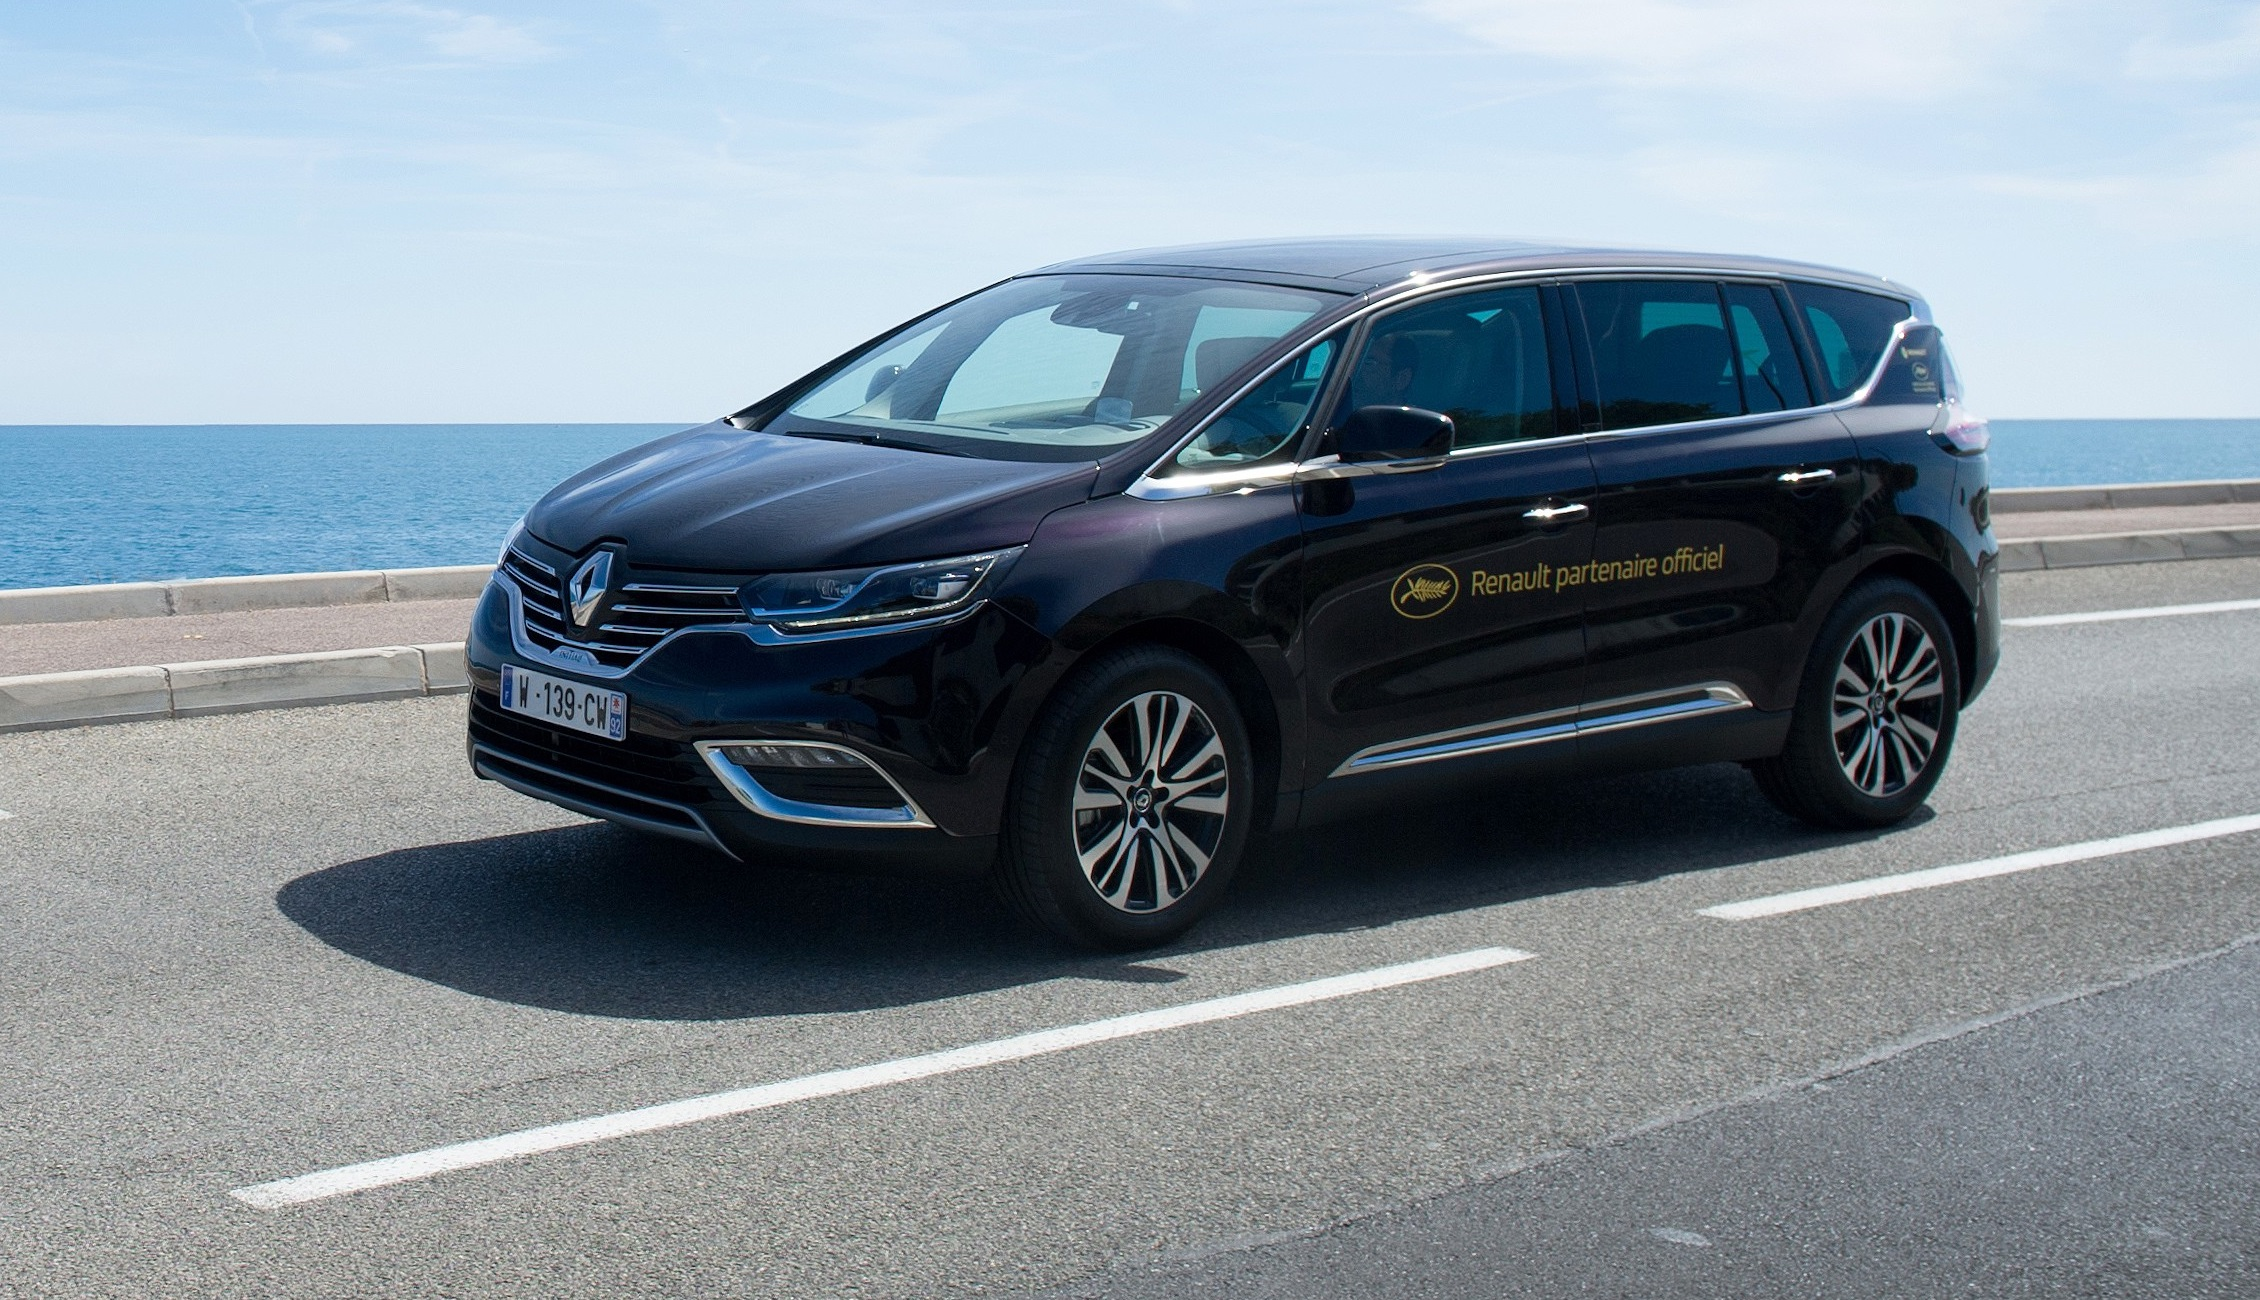 news automoto festival de cannes 2015 le nouveau renault espace voiture officielle mytf1. Black Bedroom Furniture Sets. Home Design Ideas